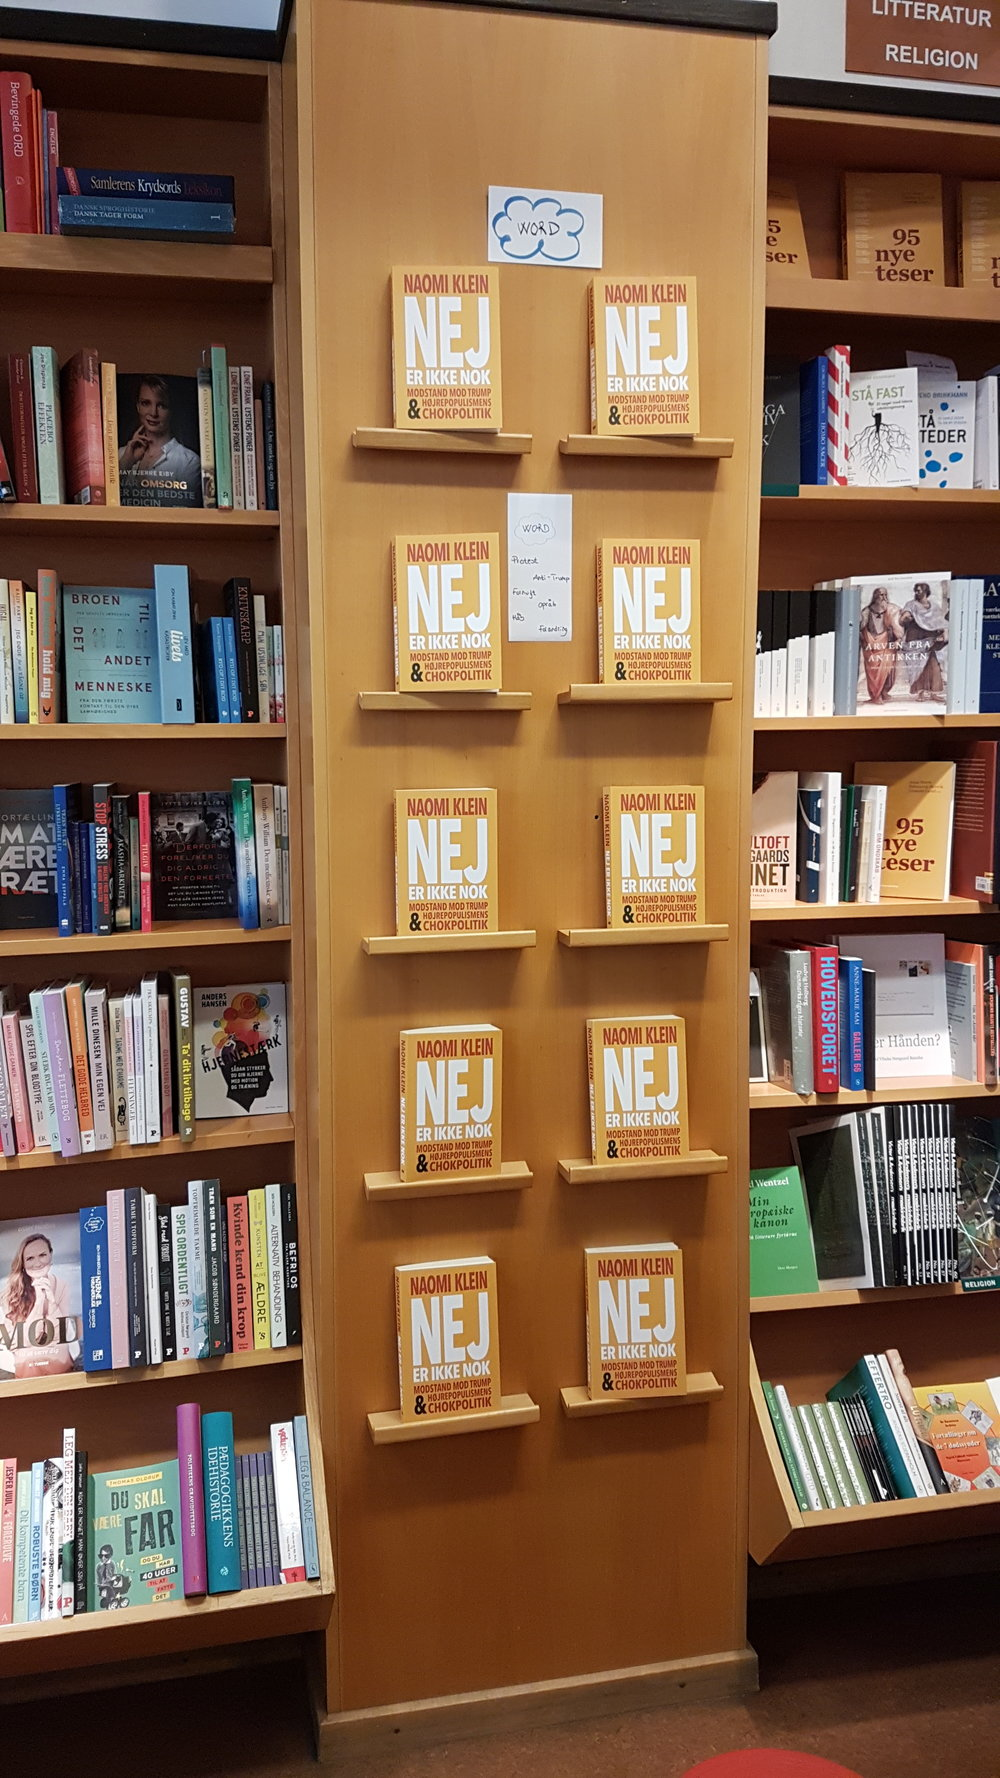 I forgot to take a photo of my English copy before I left for Denmark but I found this shelve of Danish additions of the book in the Kristian F. Møller bookstore in Aarhus.